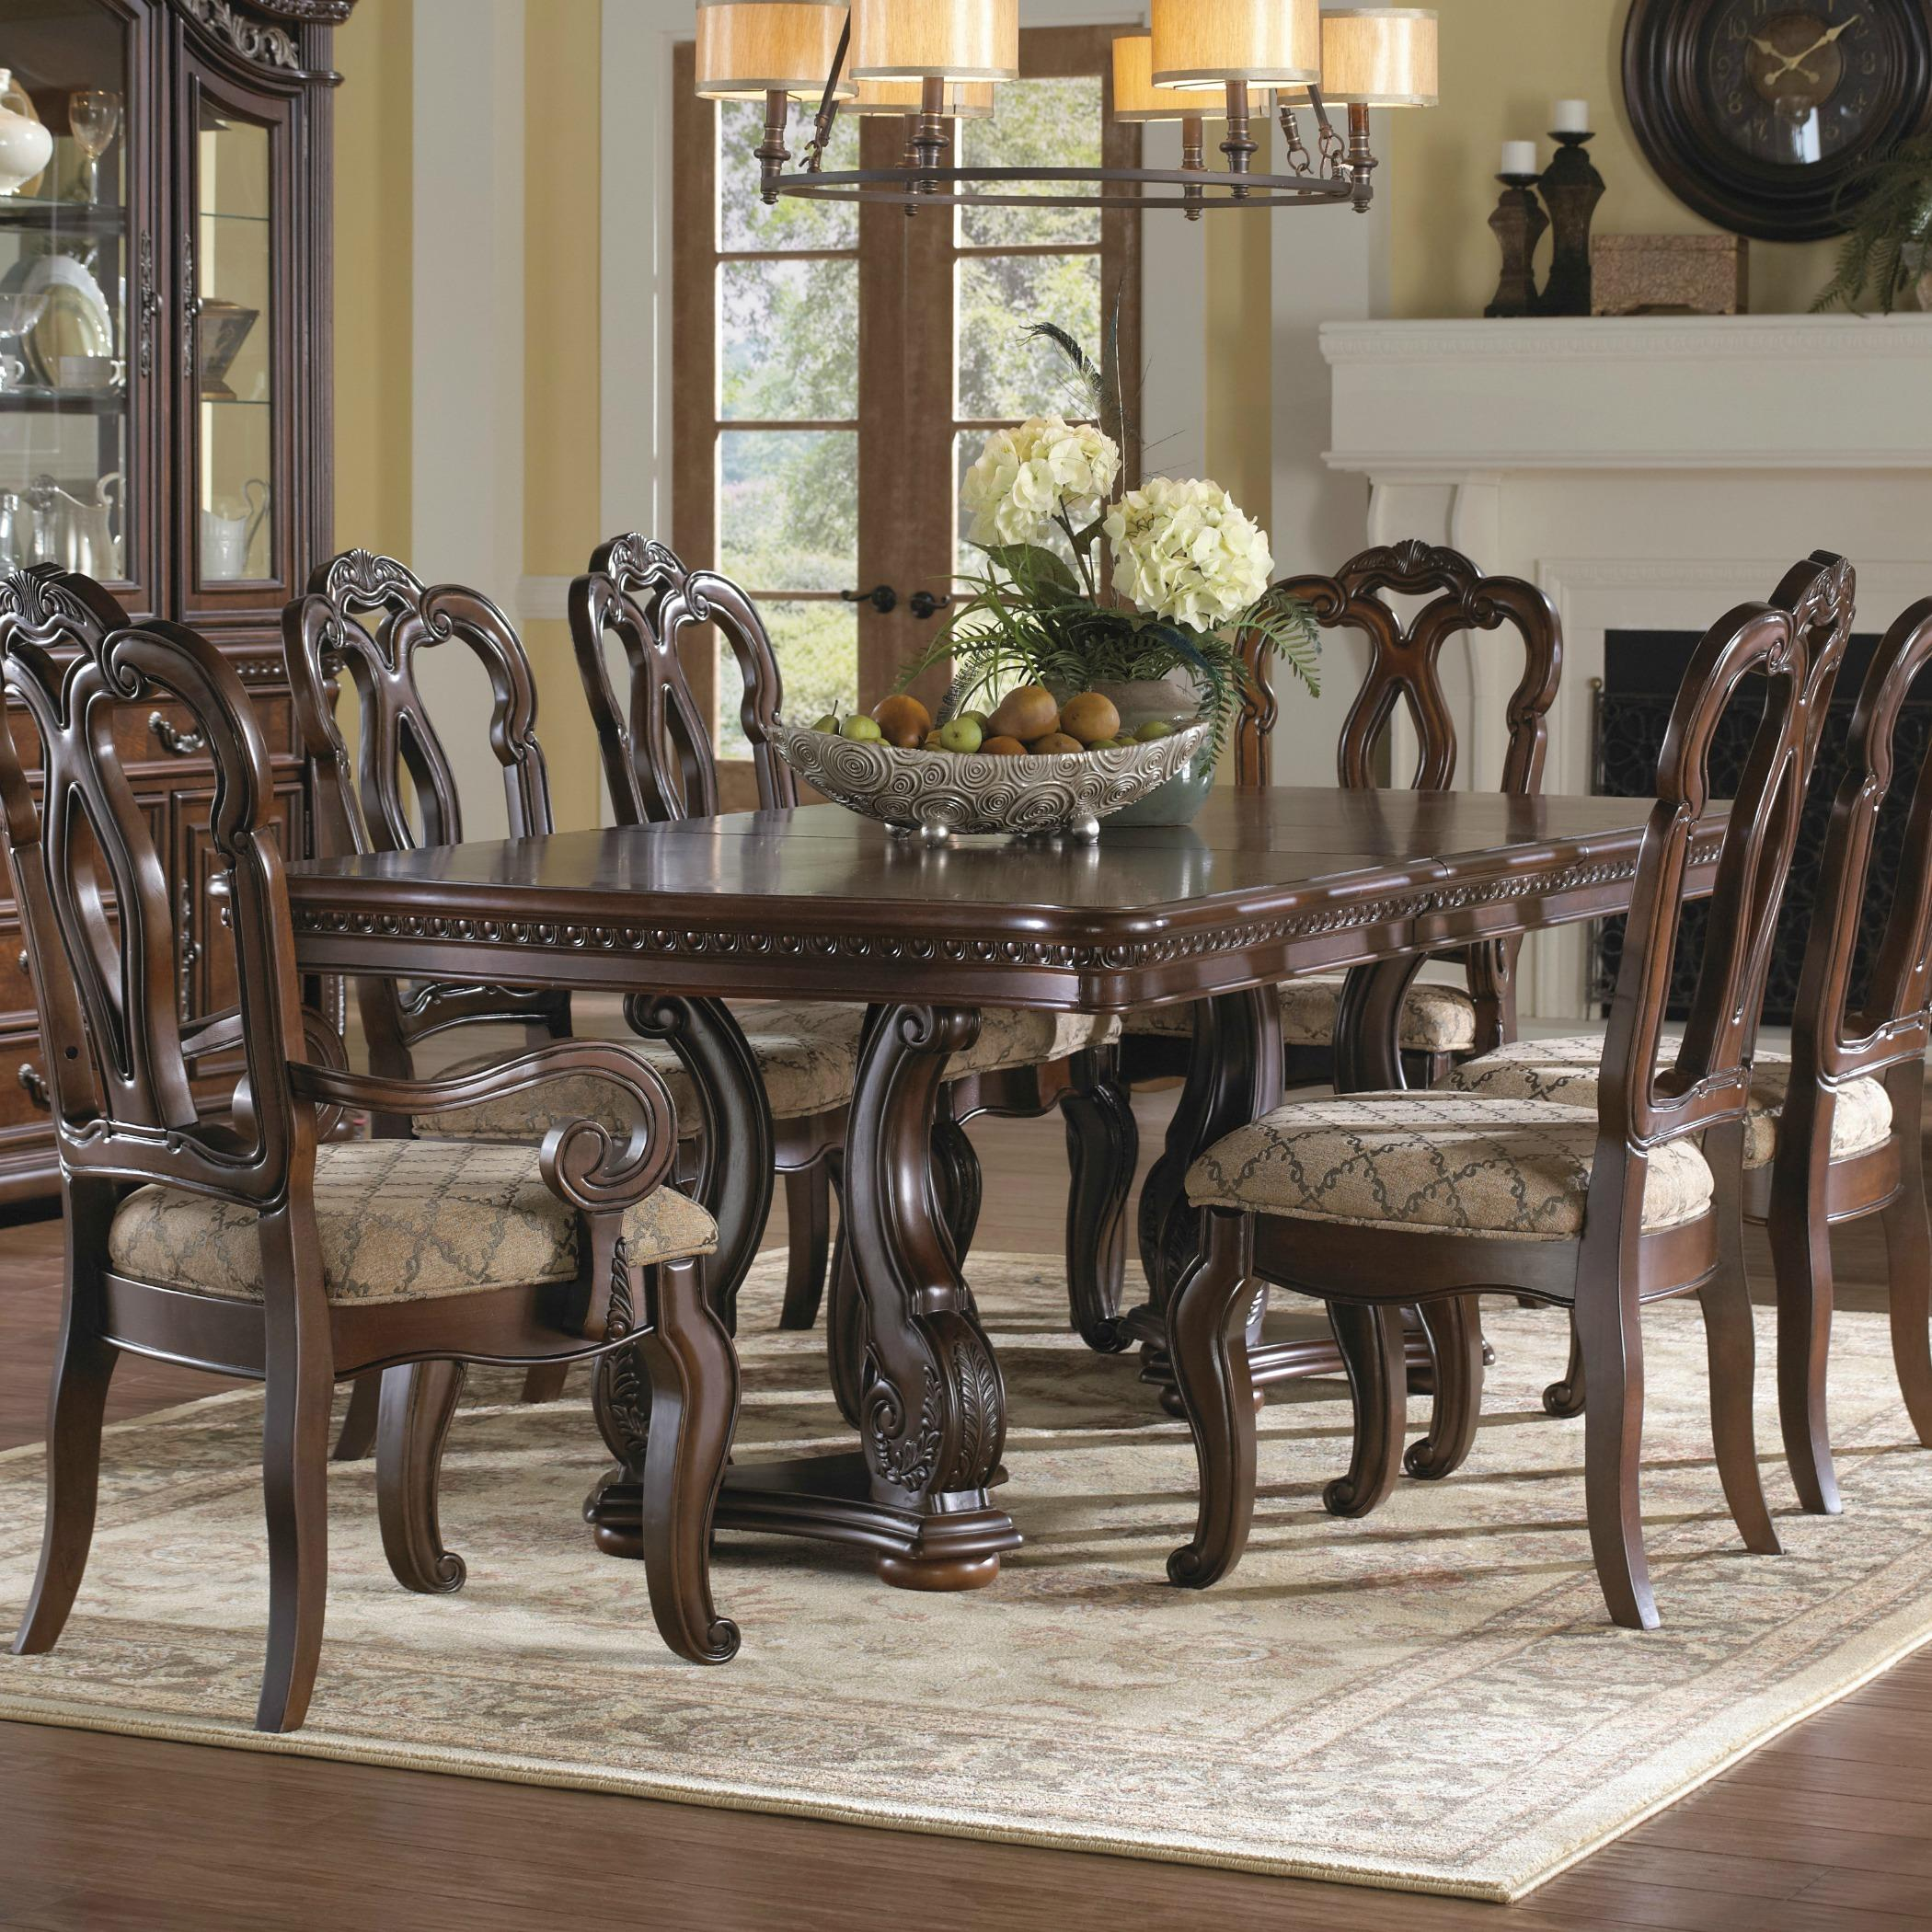 Pulaski San Marino Pedestal Table